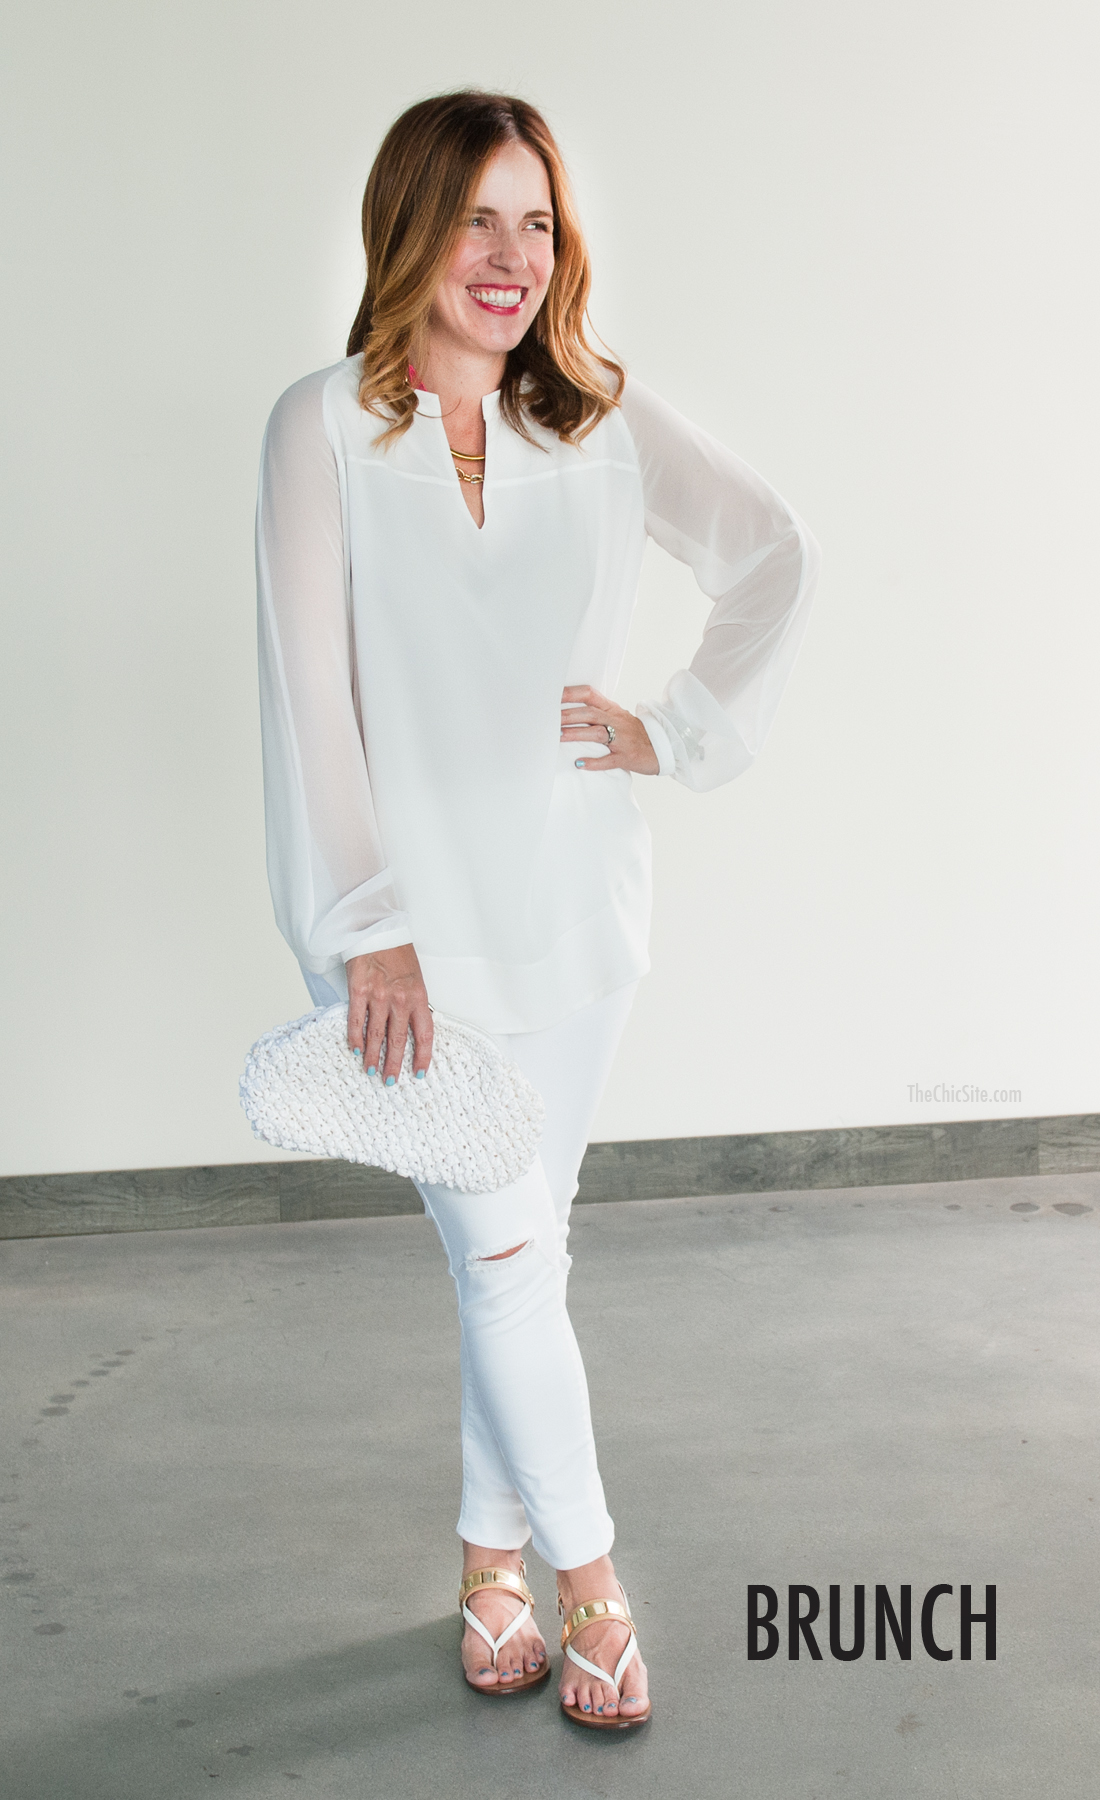 All White Outfit for Brunch